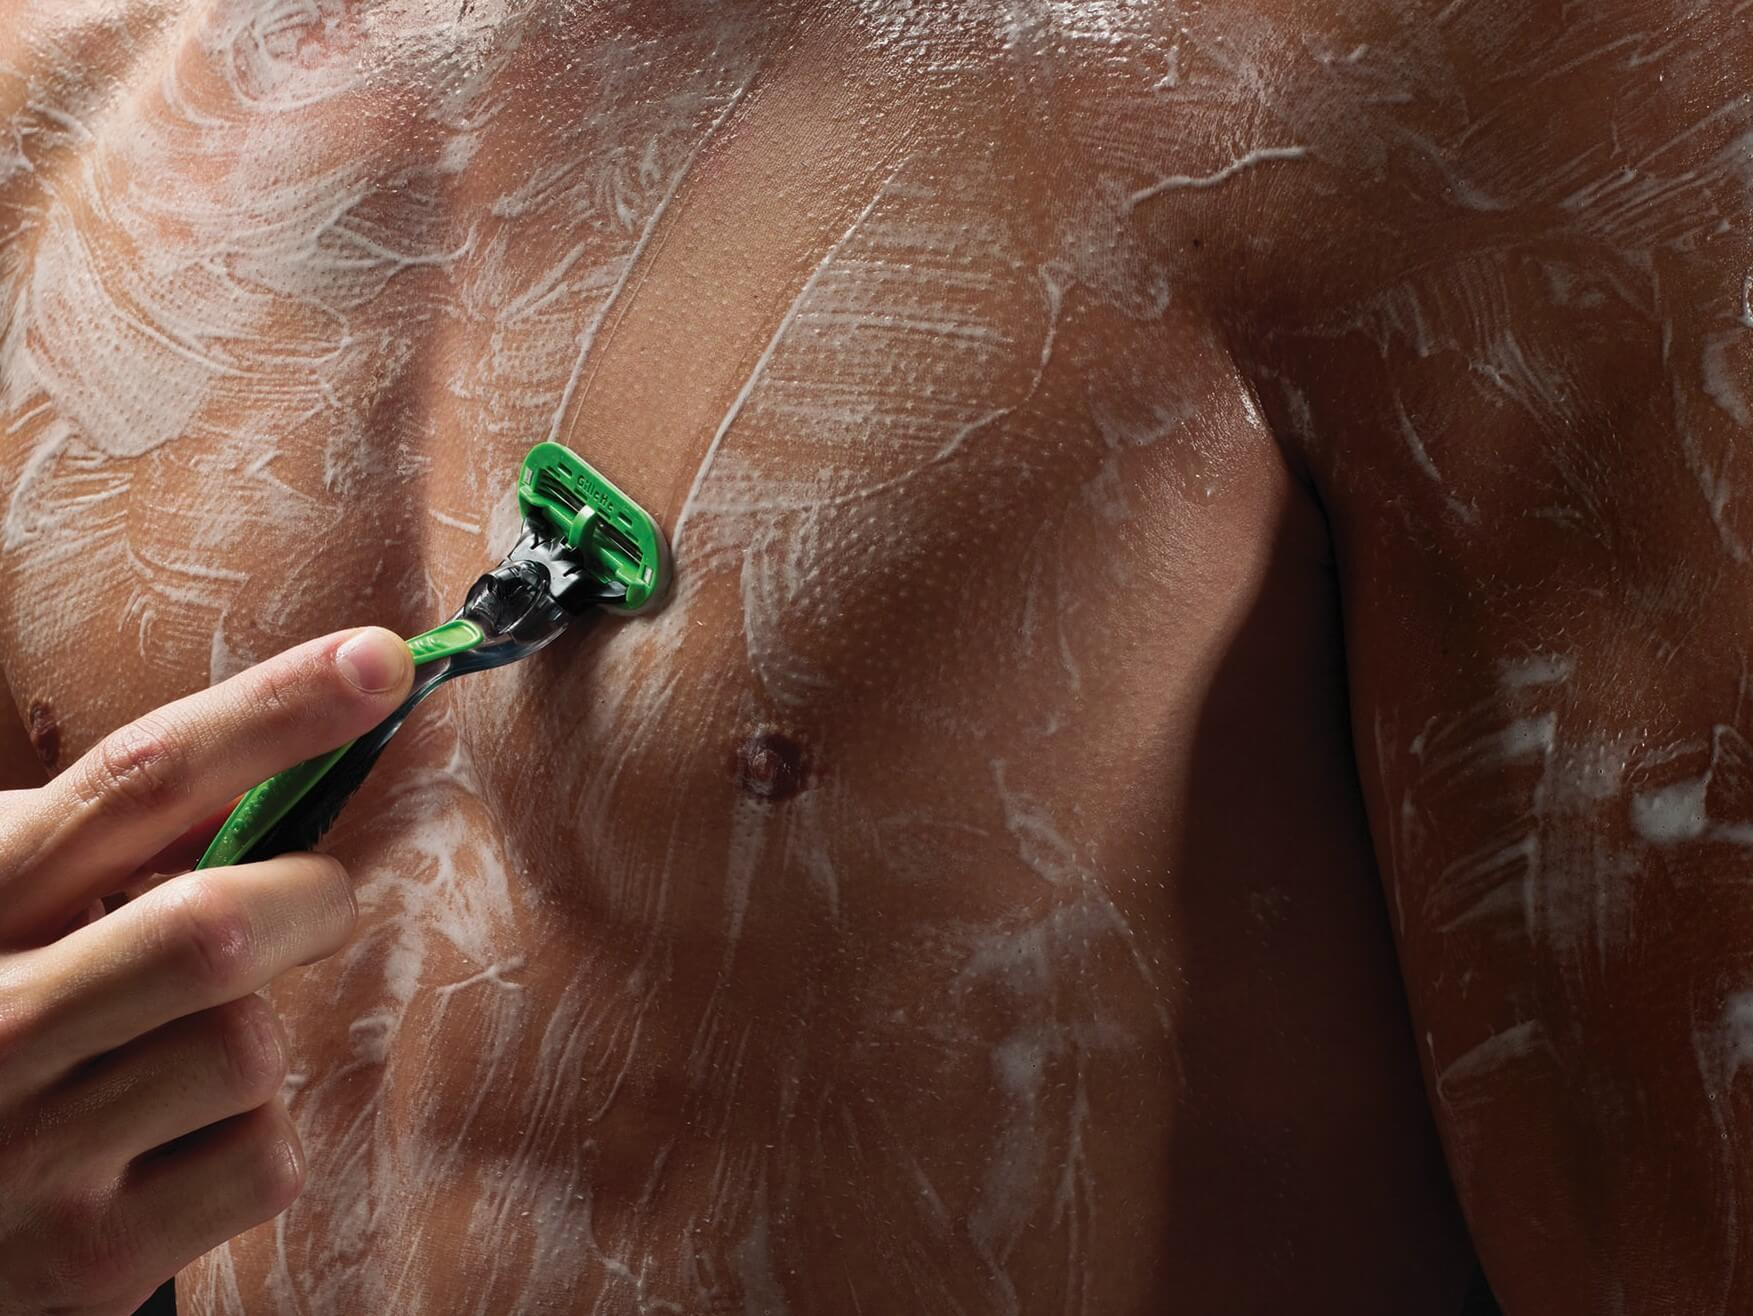 Man shaving chest with Gillette razor.